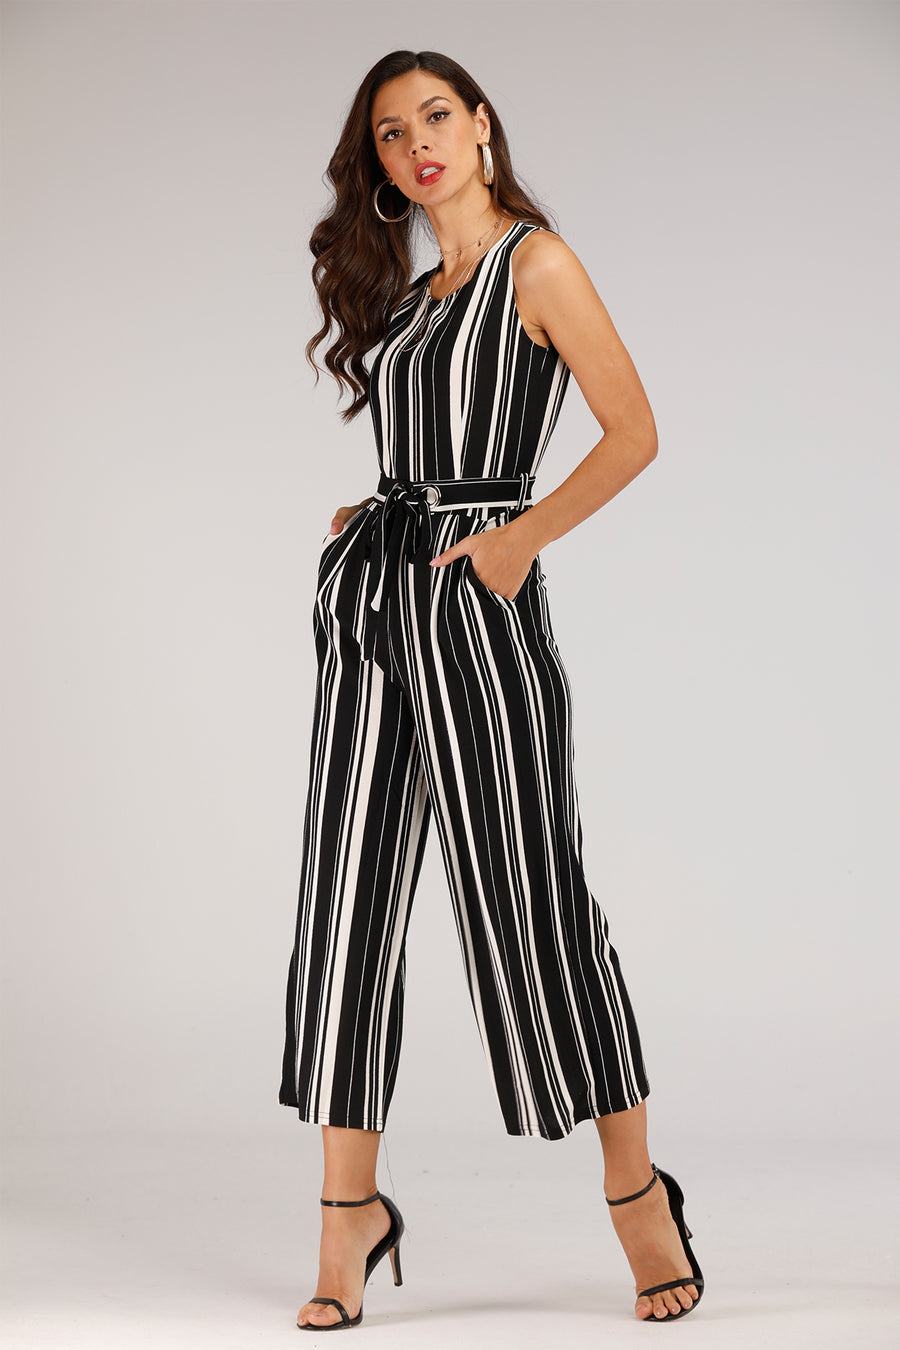 Black & White Stripe Knit Jumpsuit With Belt - Mantra Pakistan